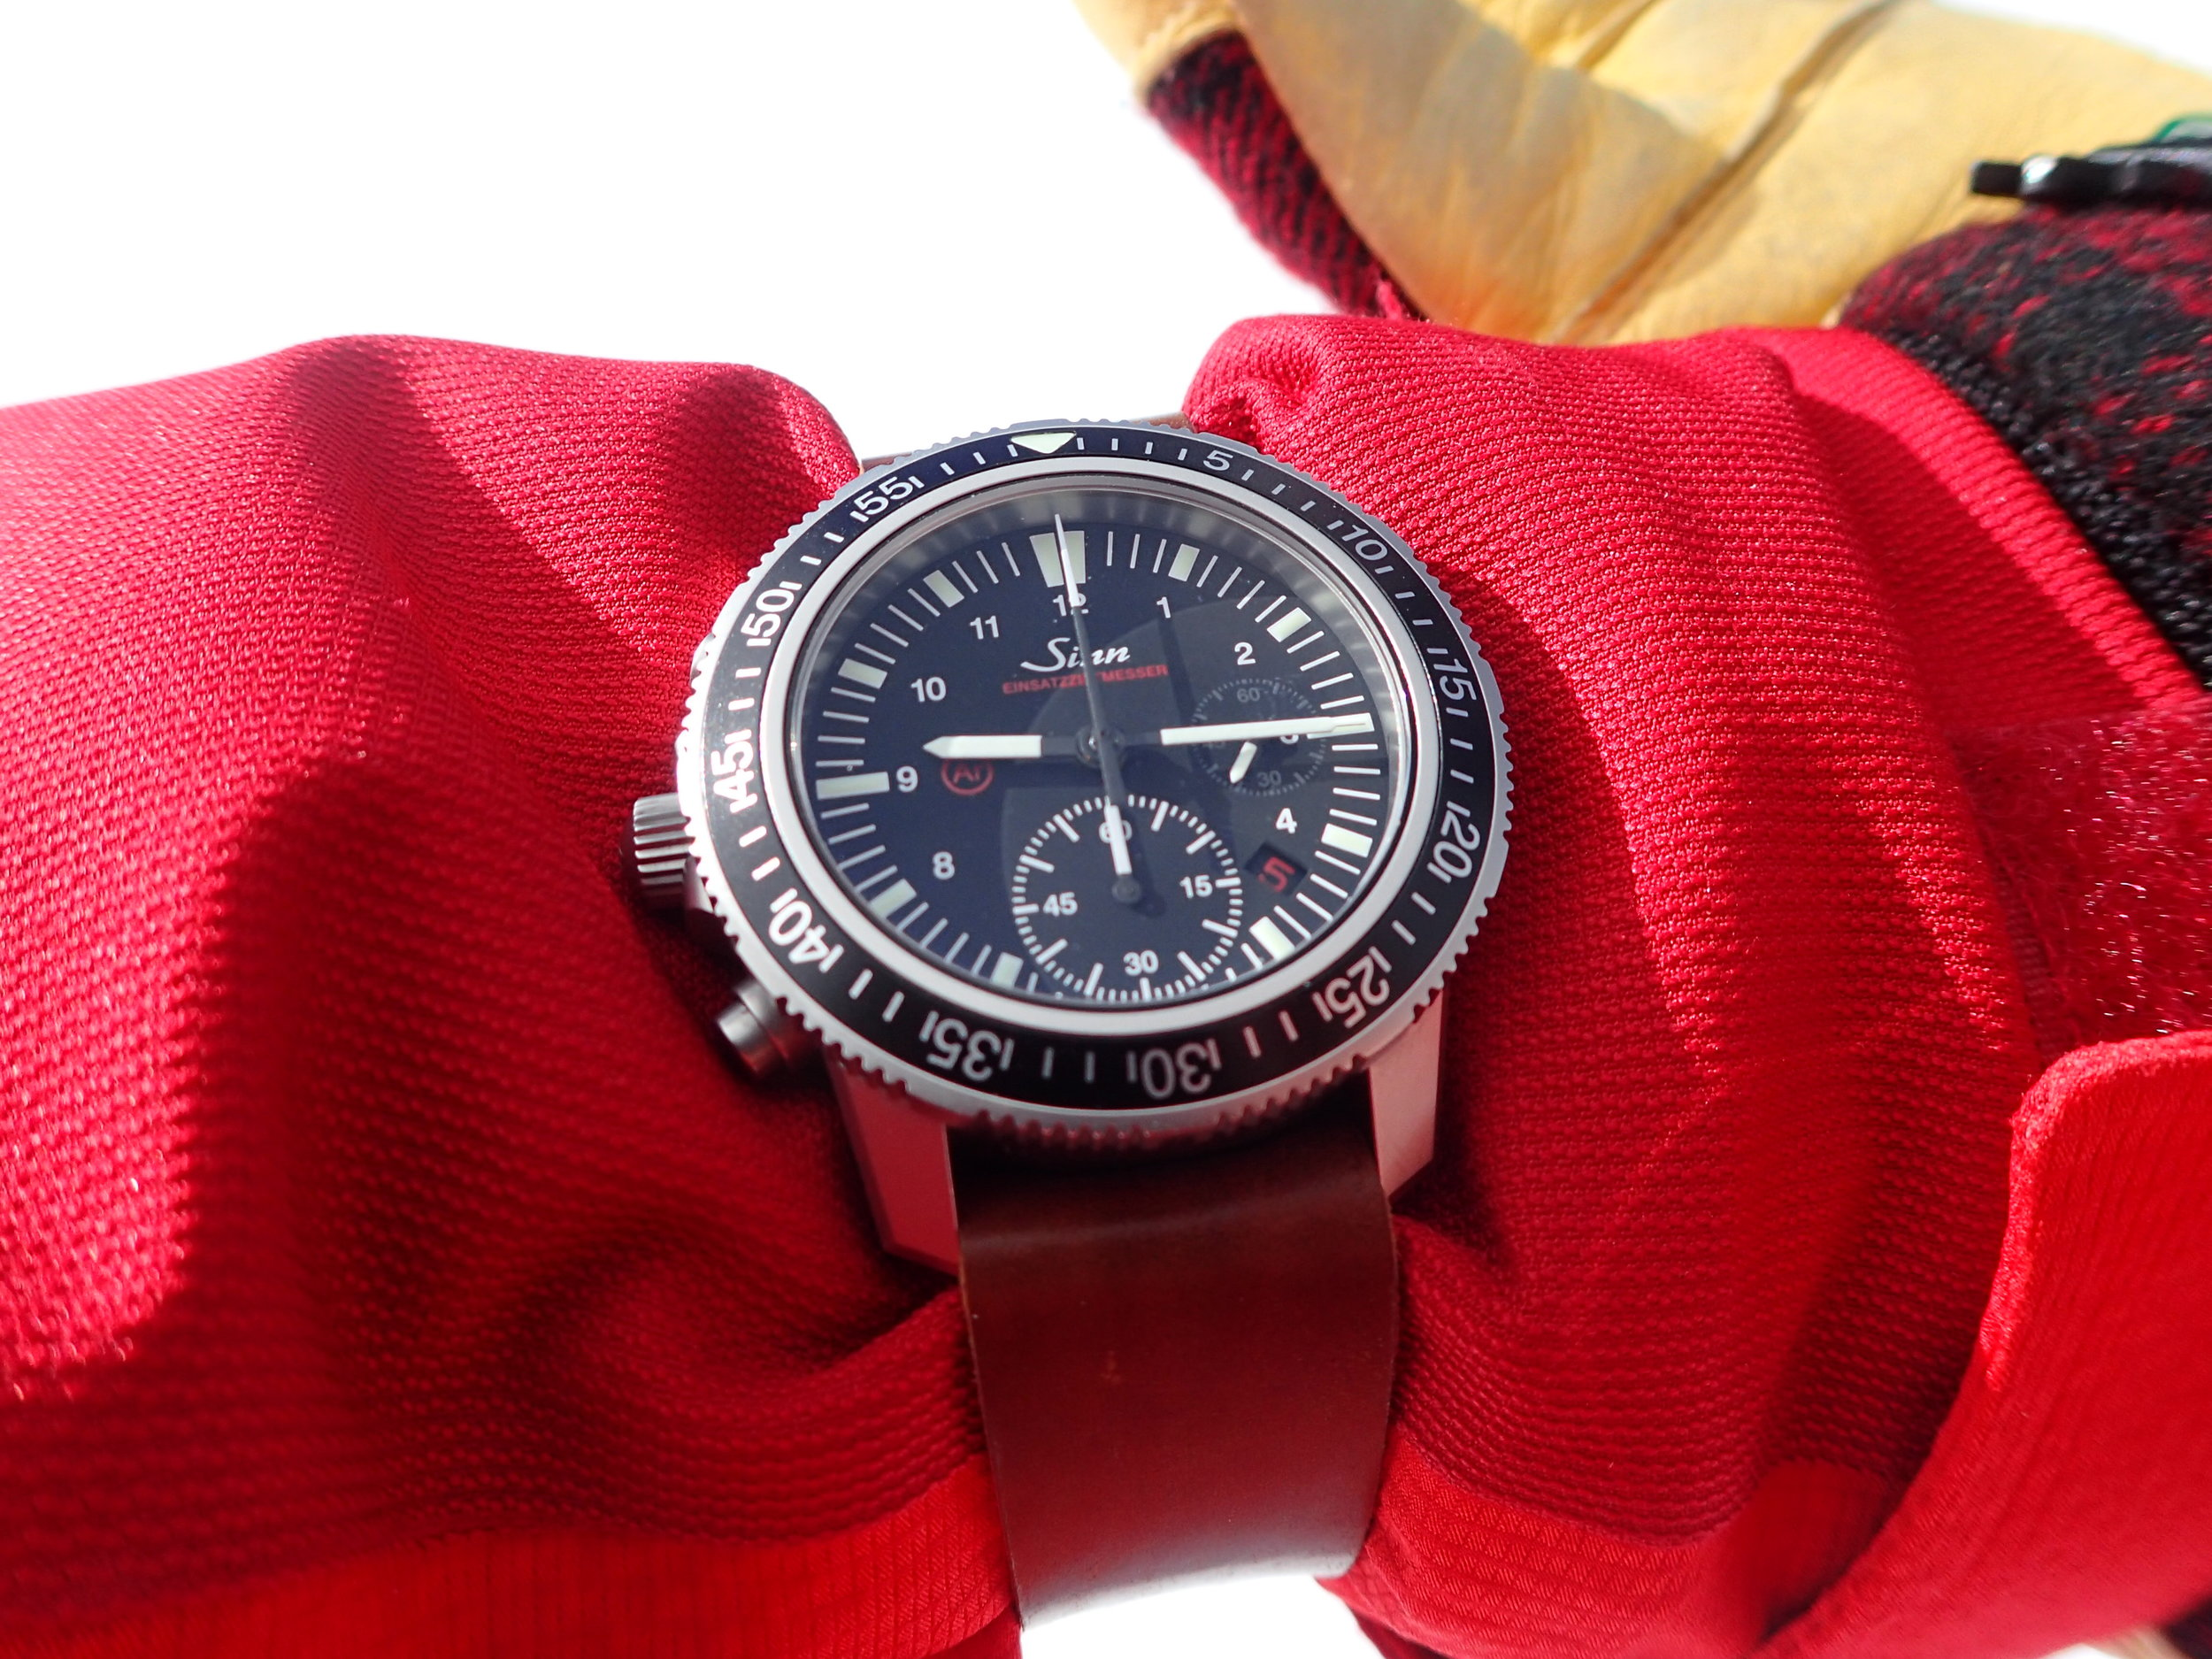 An extra-long one-piece strap makes it easy to wear the Sinn over a coat sleeve.